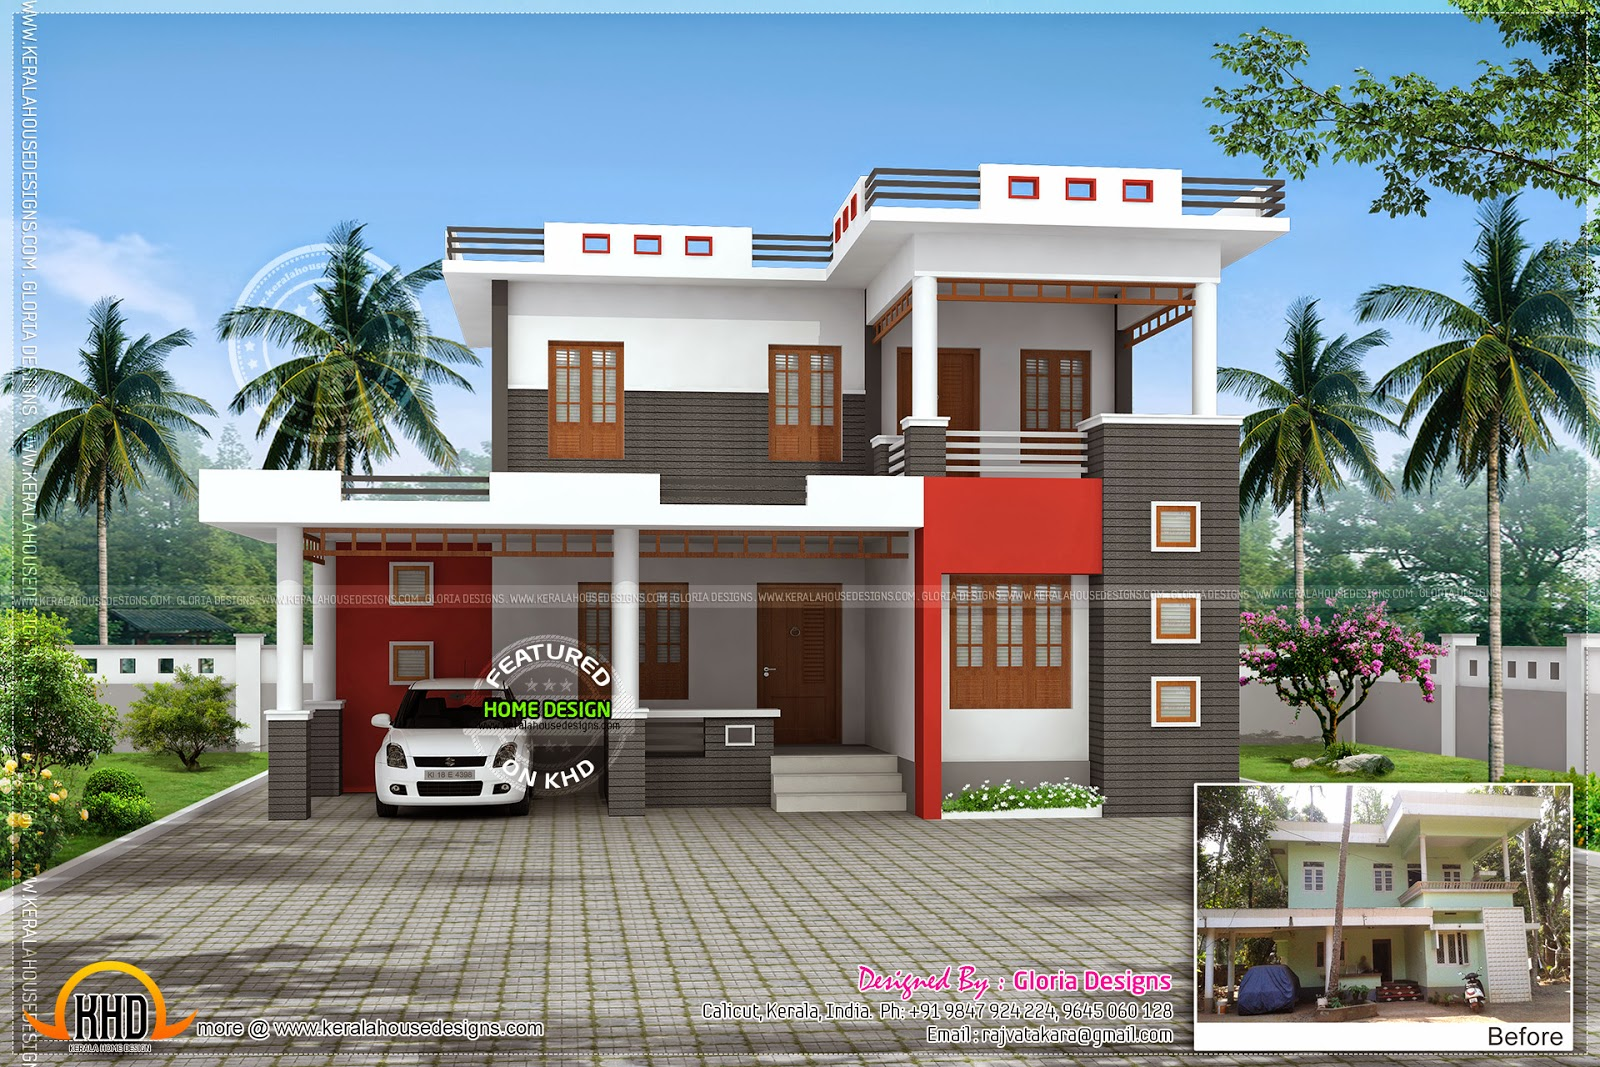 Renovation 3d model for an old house kerala home design New home plan in india